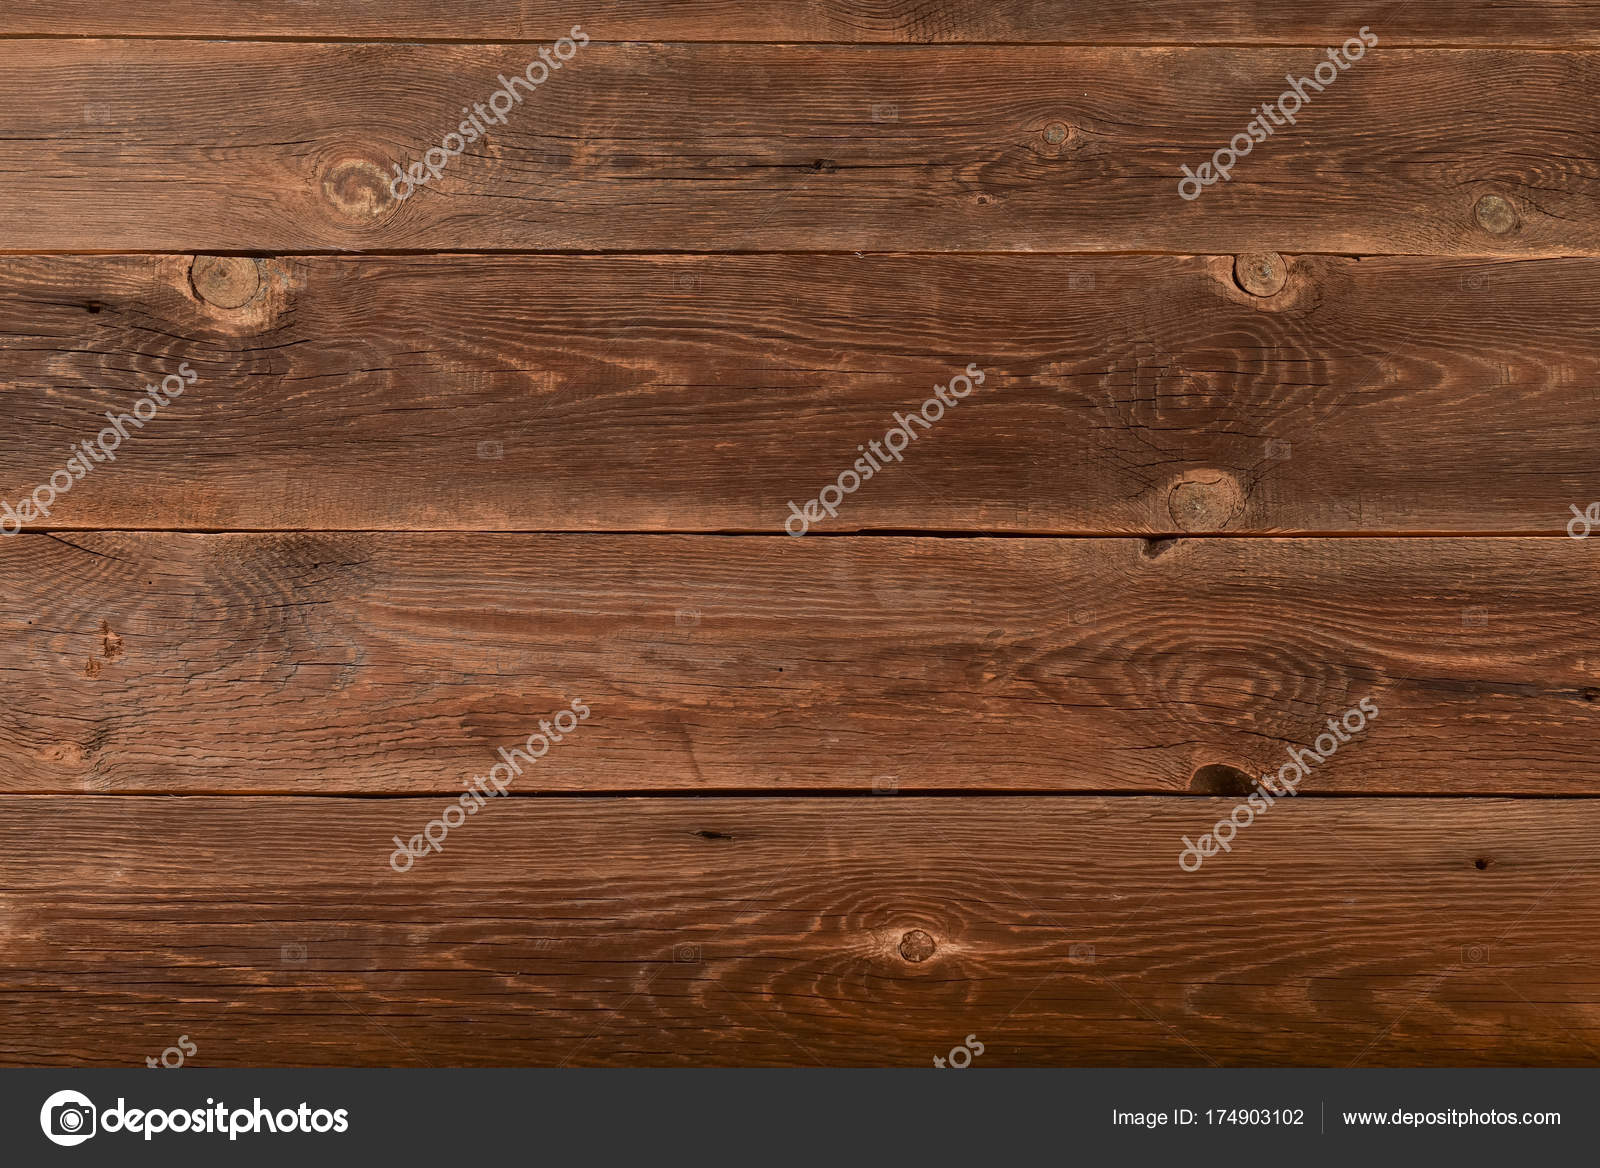 featurepics image to as online at plank desk or background stock texture wood use